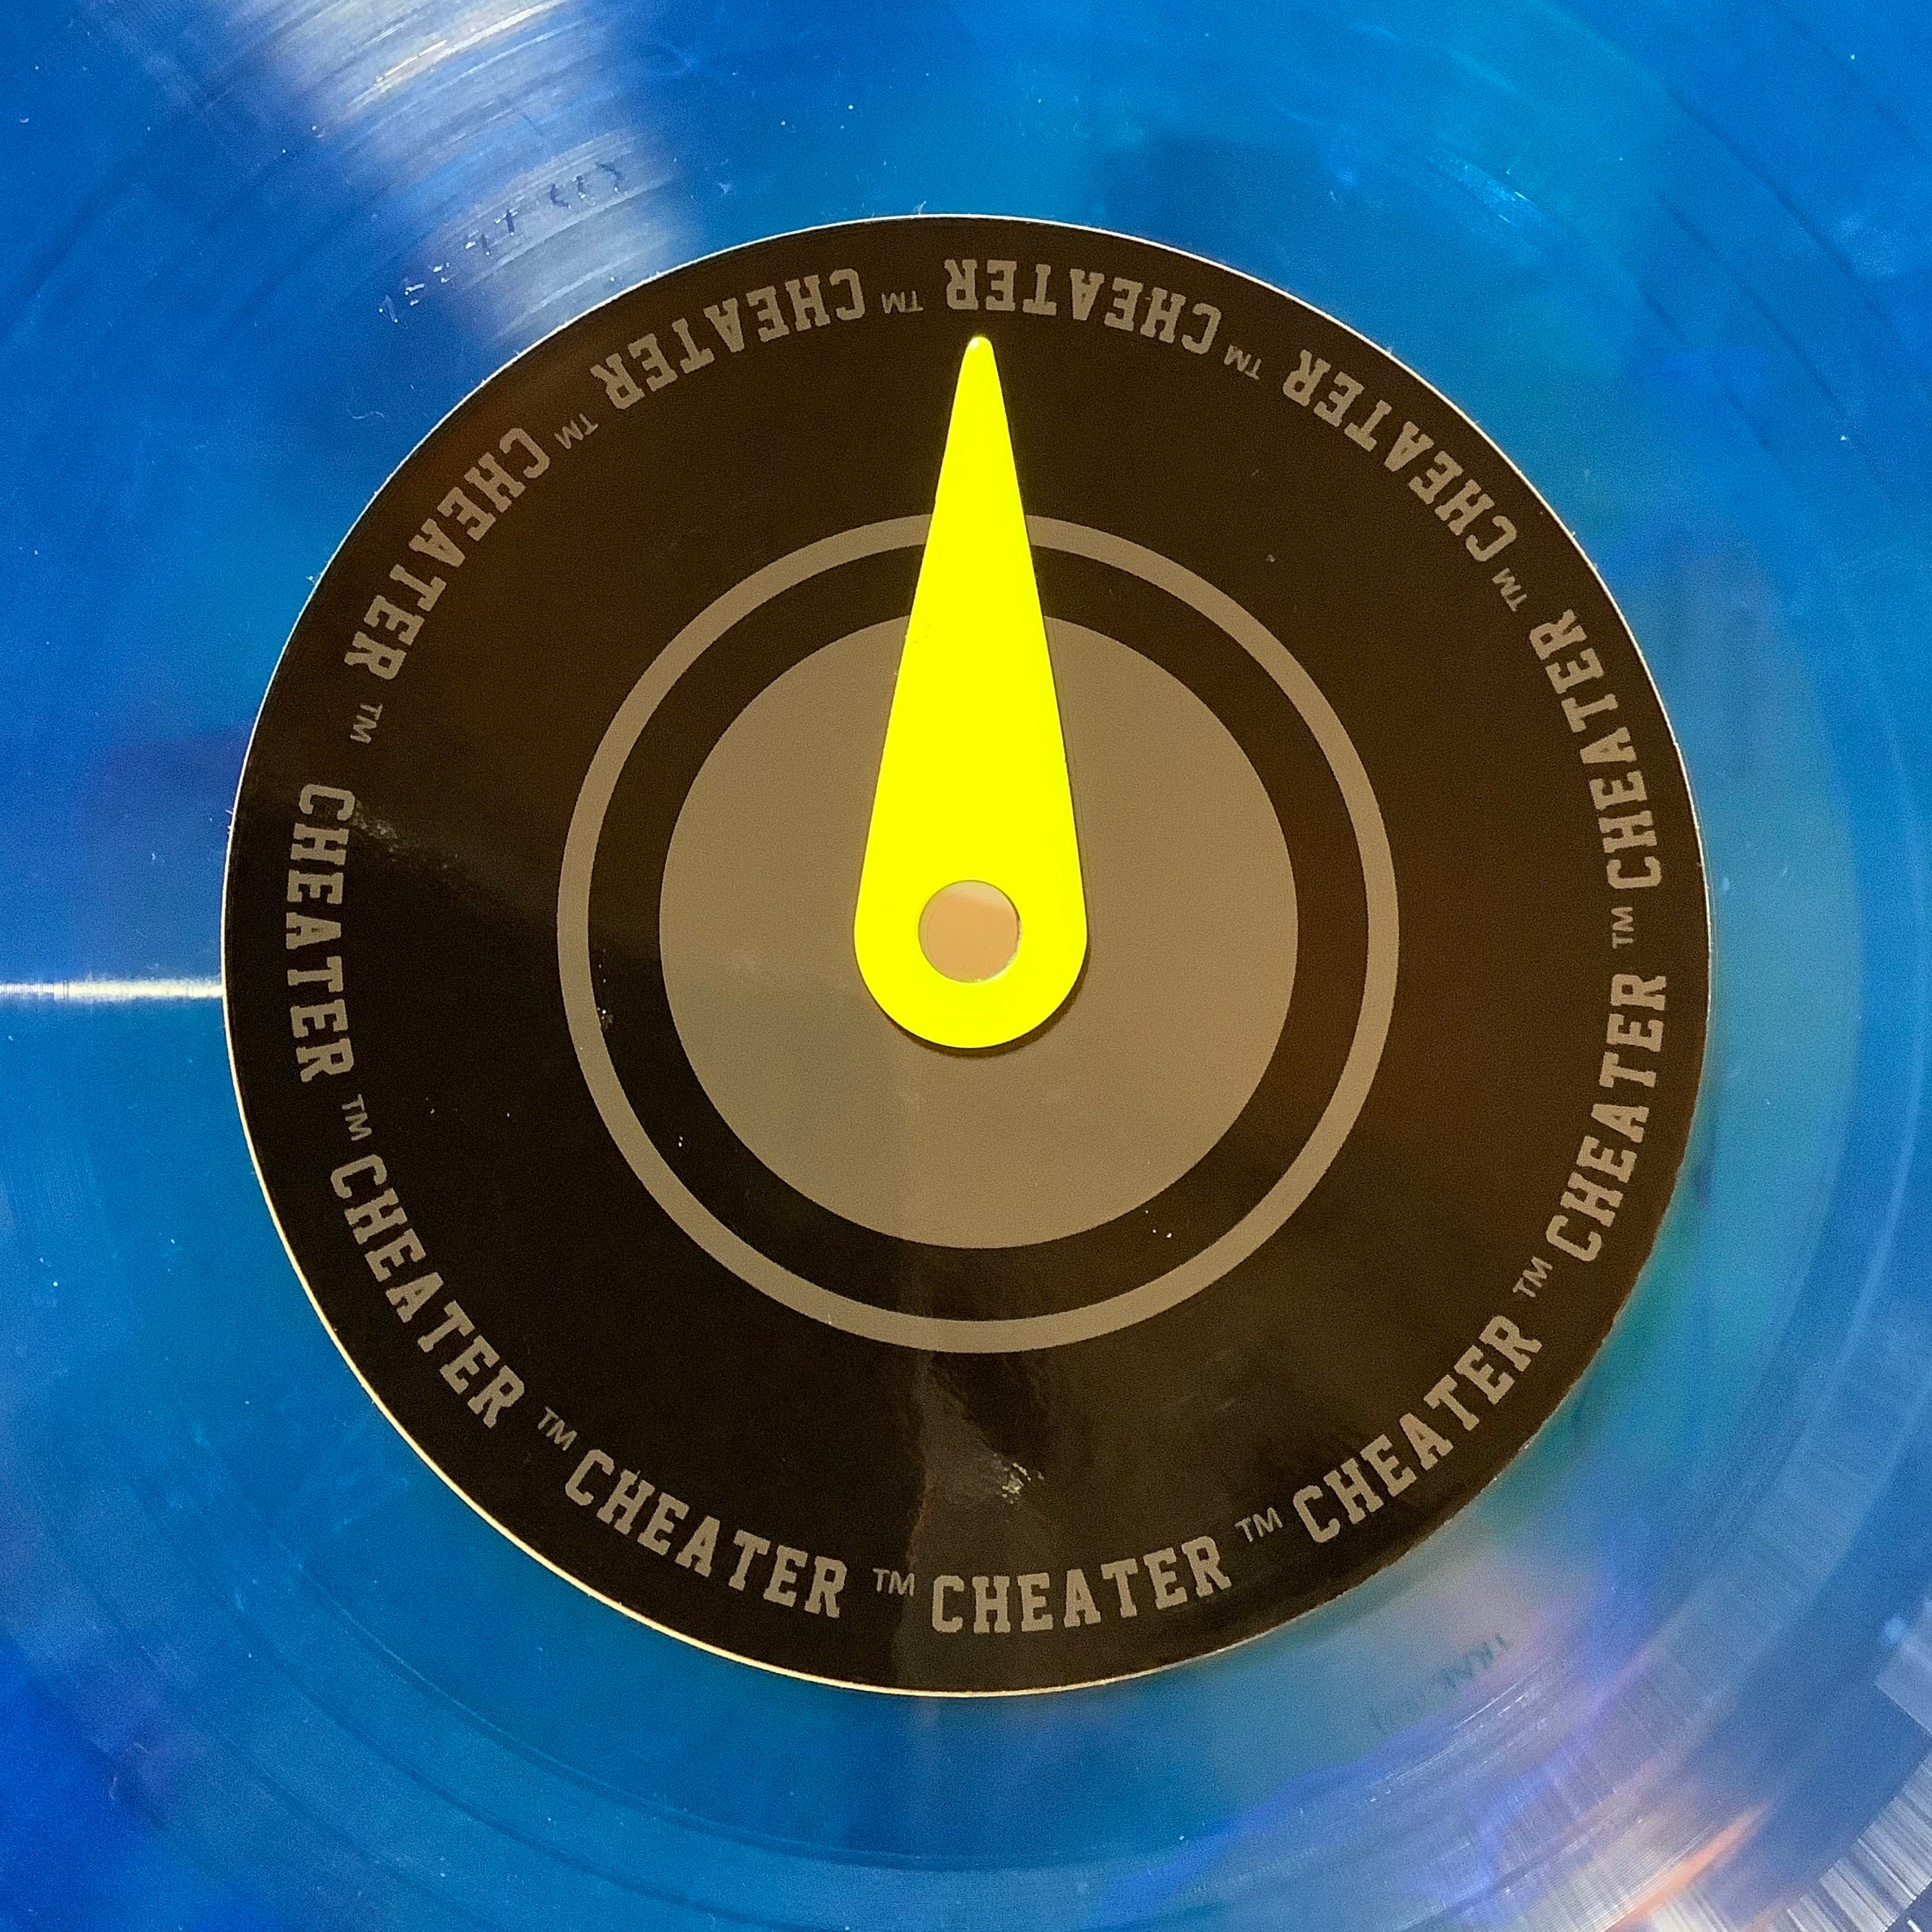 Cheater! Magnetic record label marker